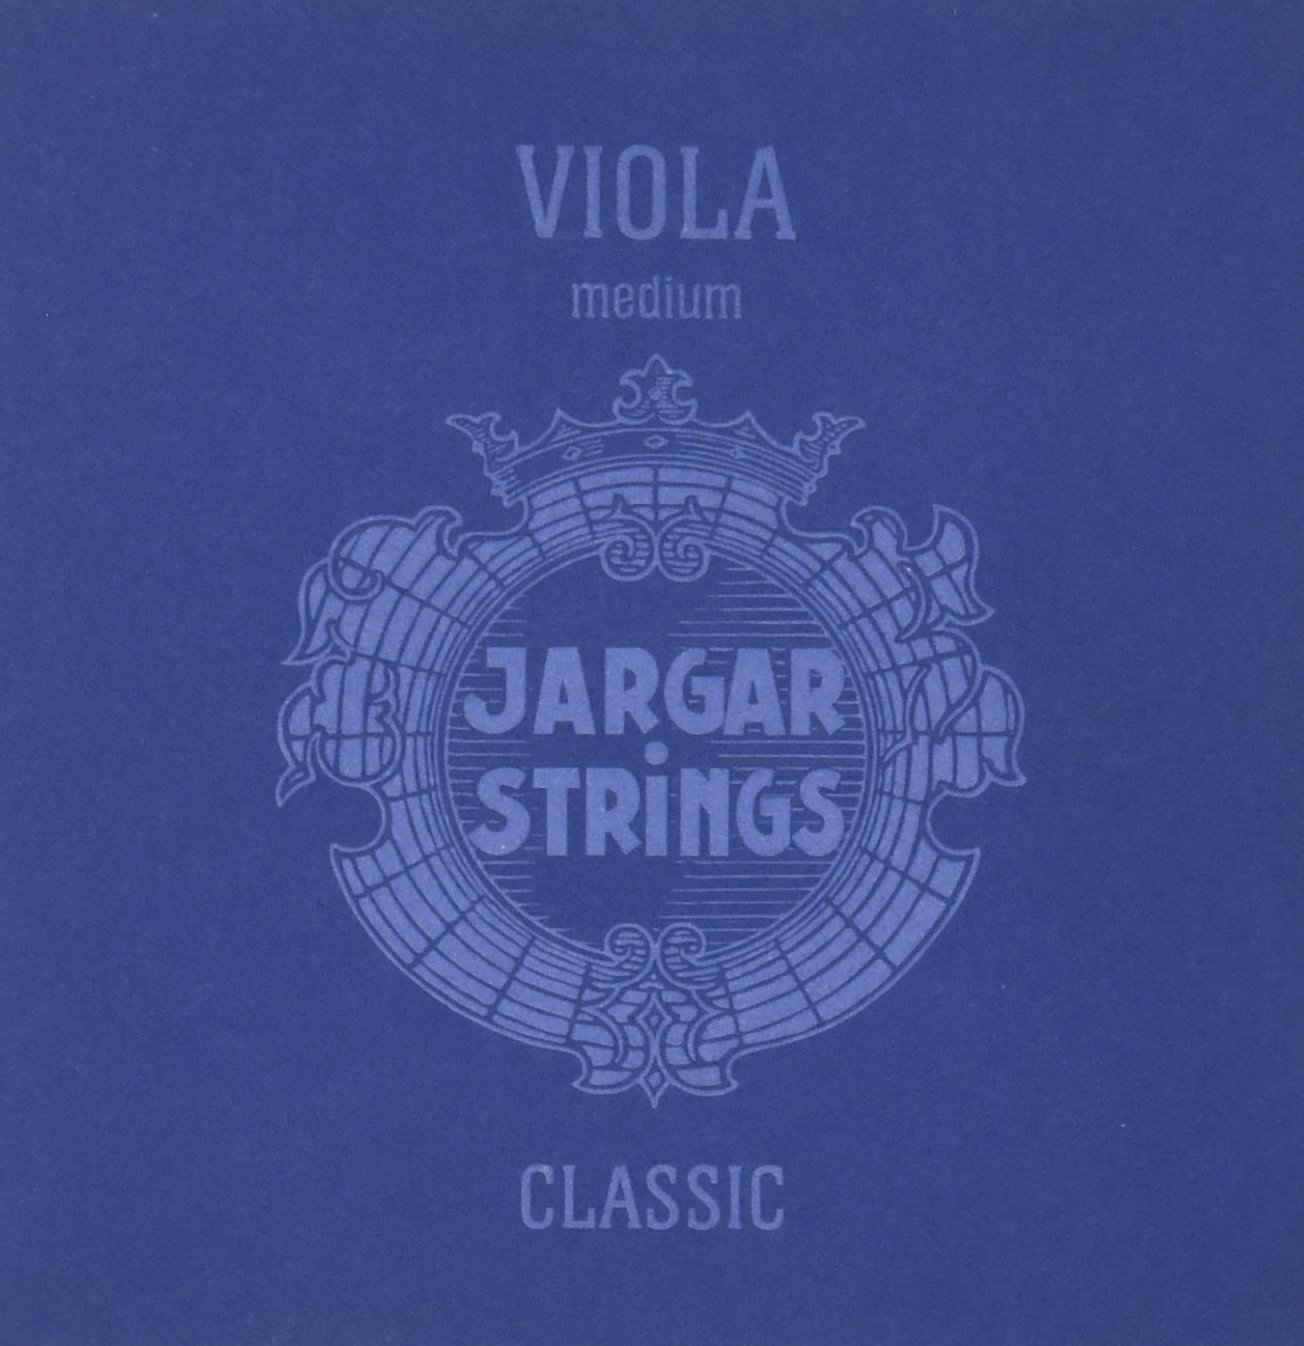 Jargar Jar-4792 up to 16.5 Viola String Set Medium